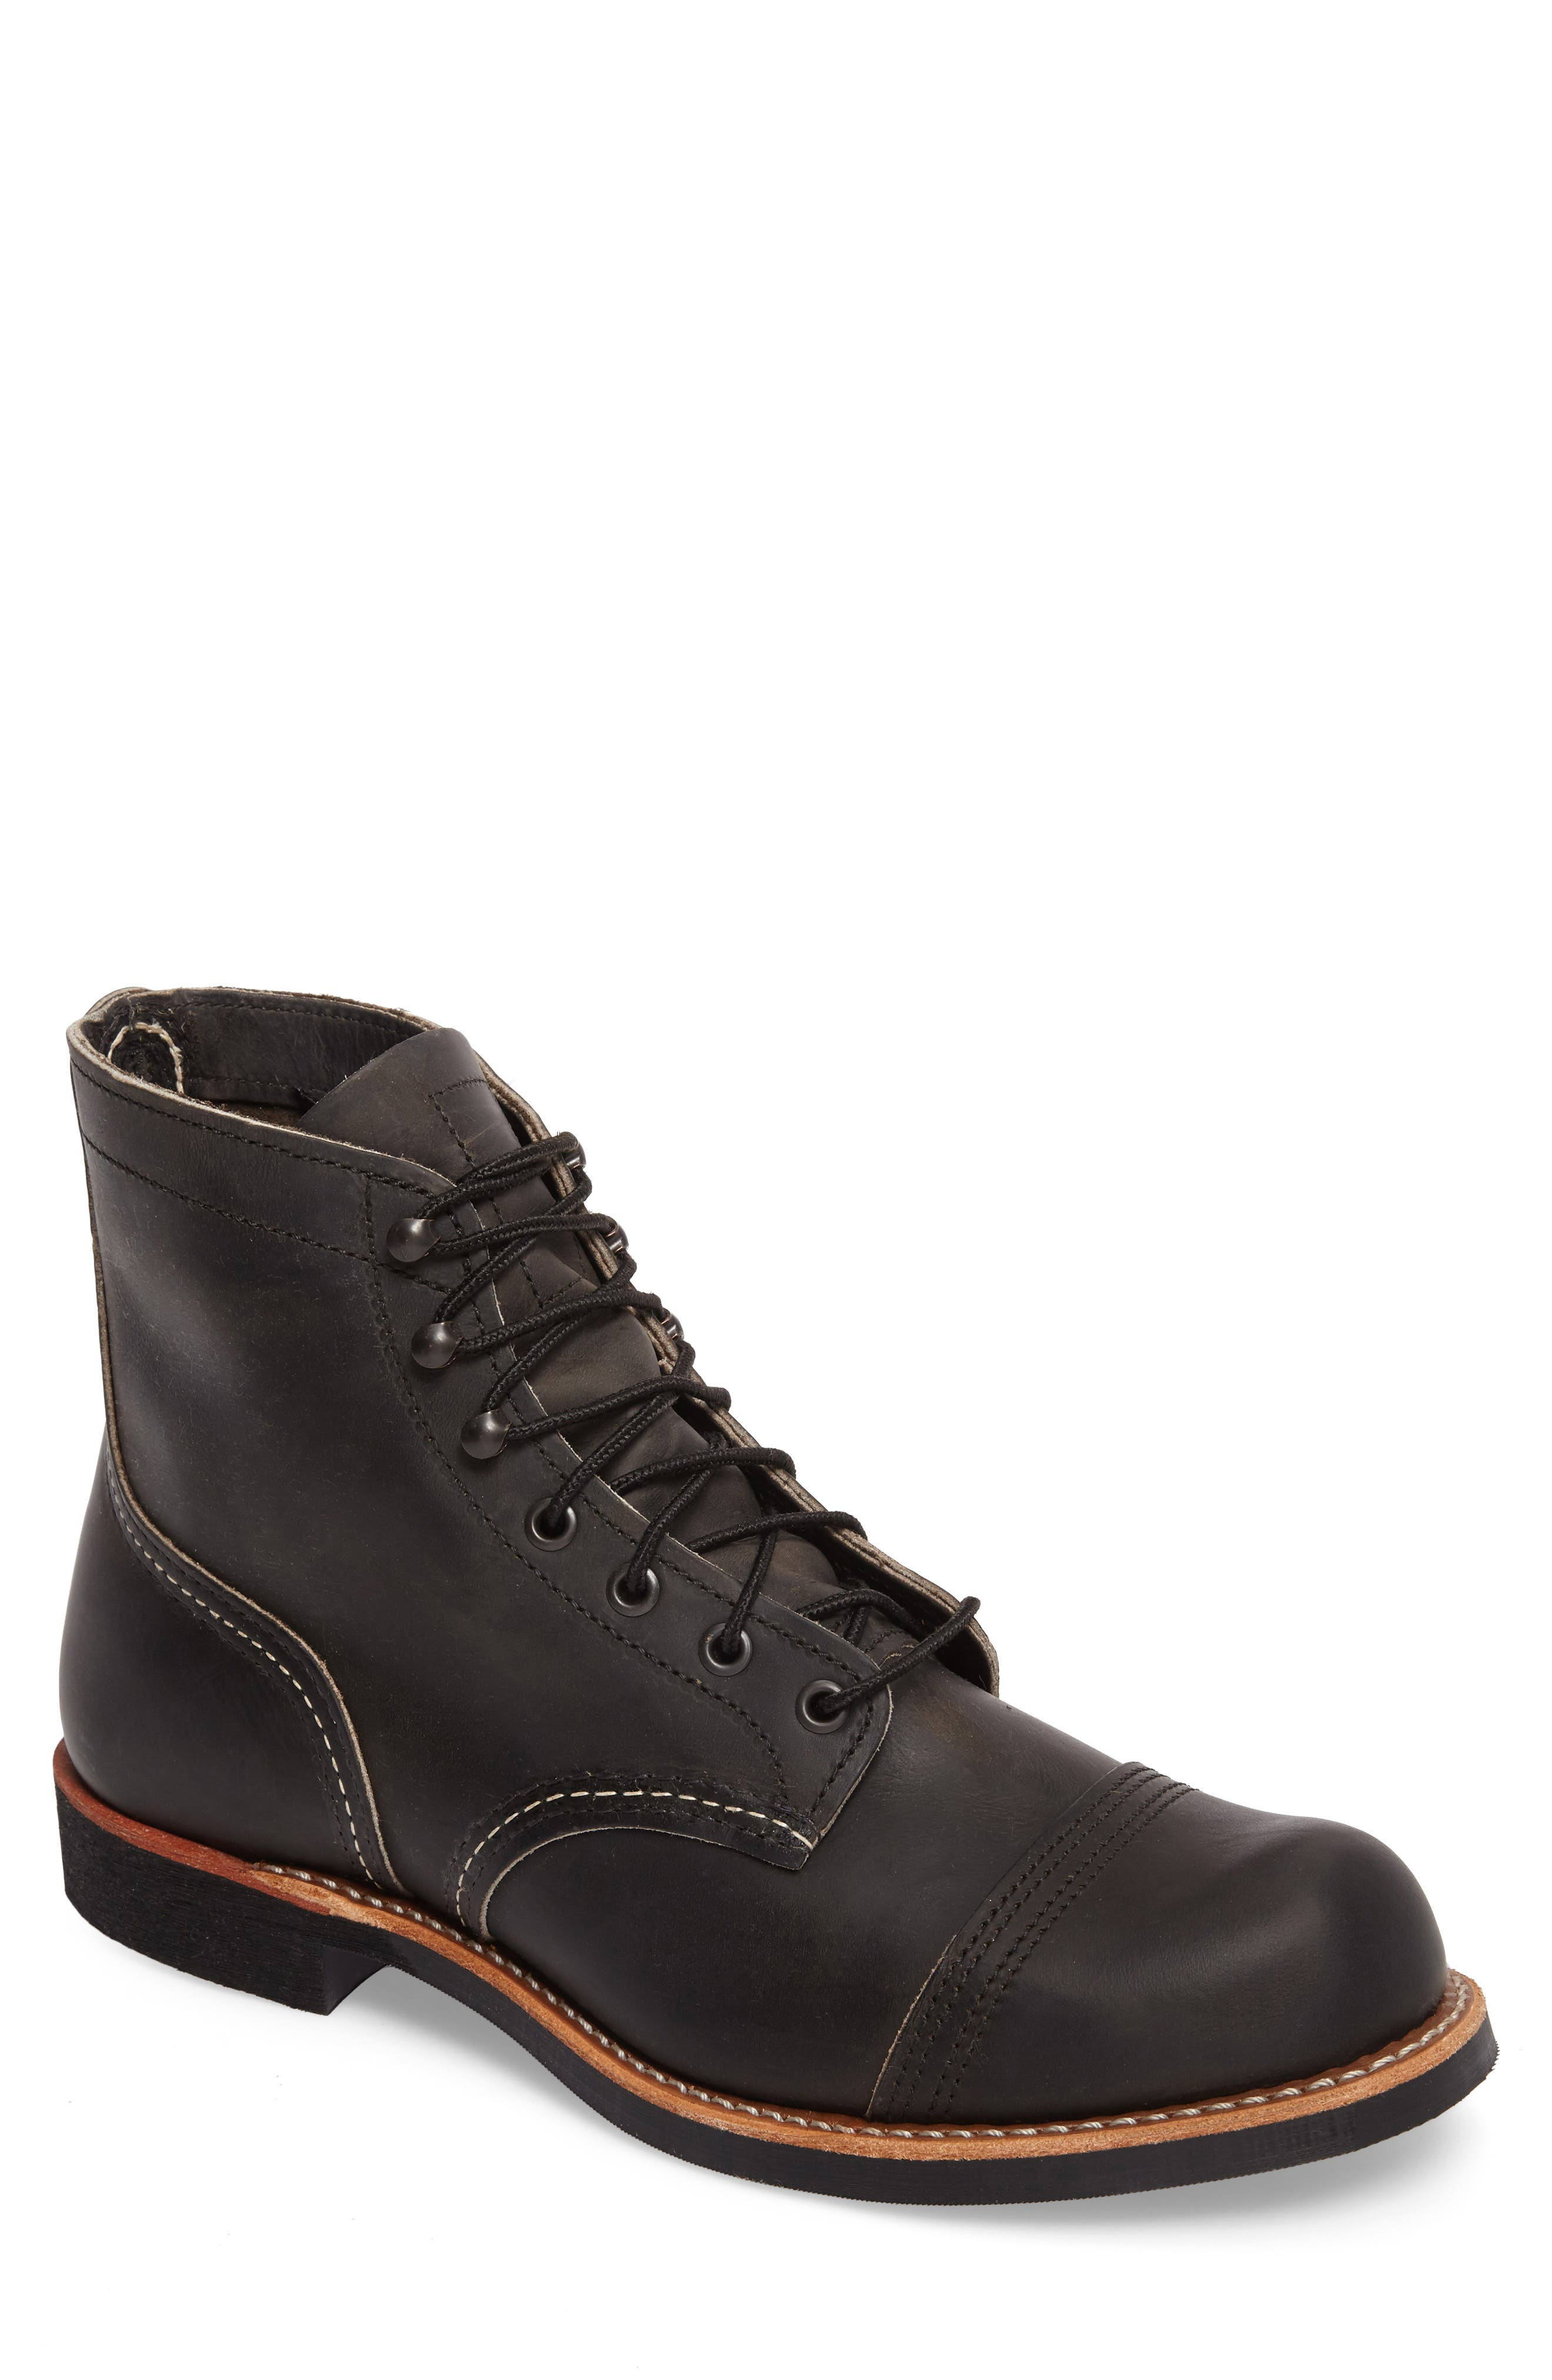 Iron Ranger Cap Toe Boot,                         Main,                         color, CHARCOAL LEATHER